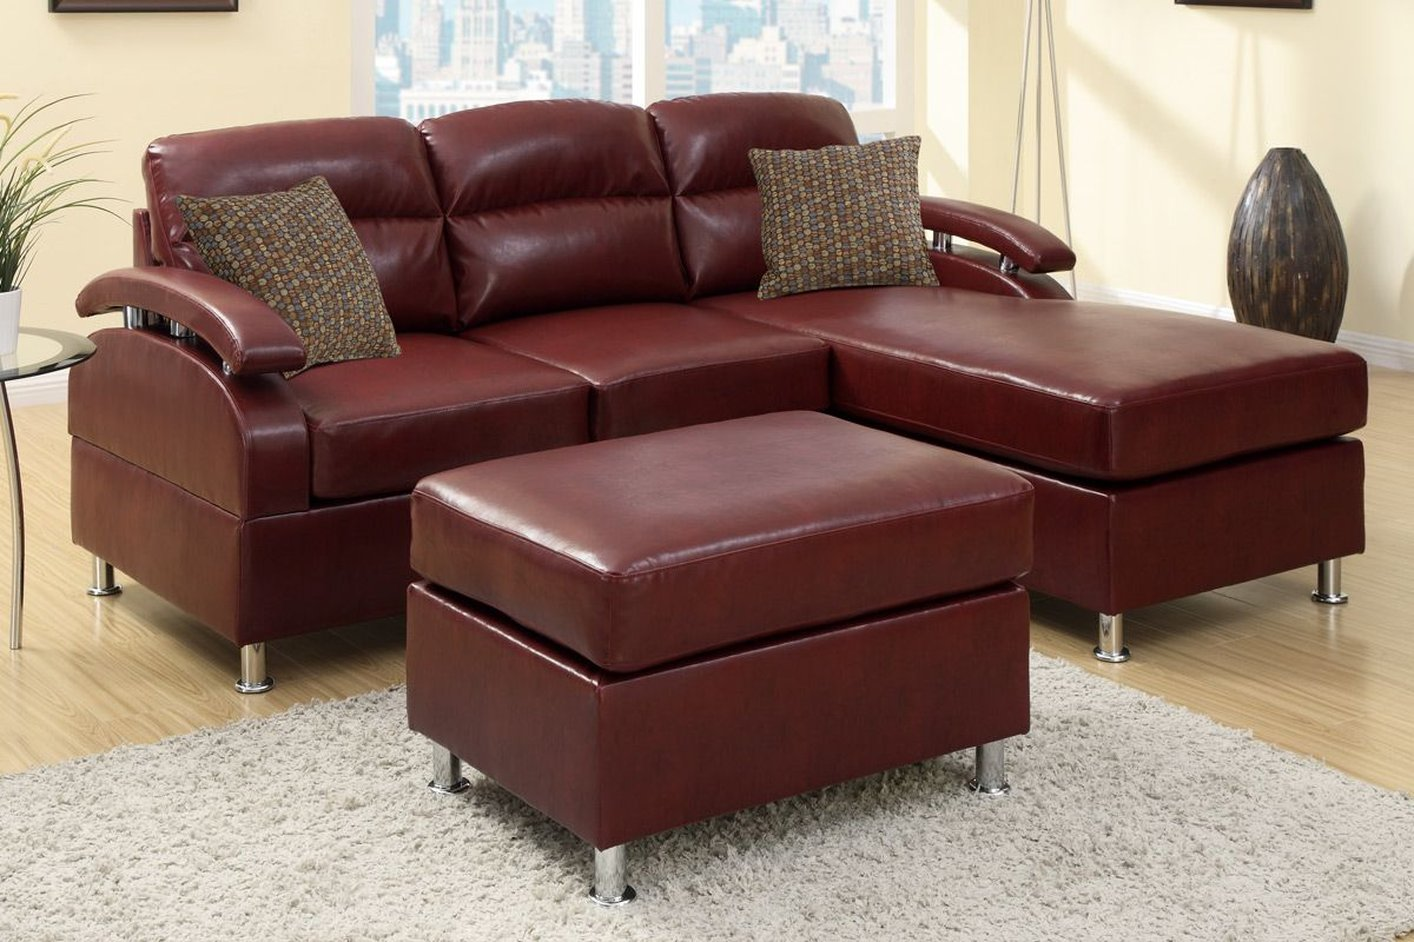 Poundex Kade F7686 Red Leather Sectional Sofa And Ottoman